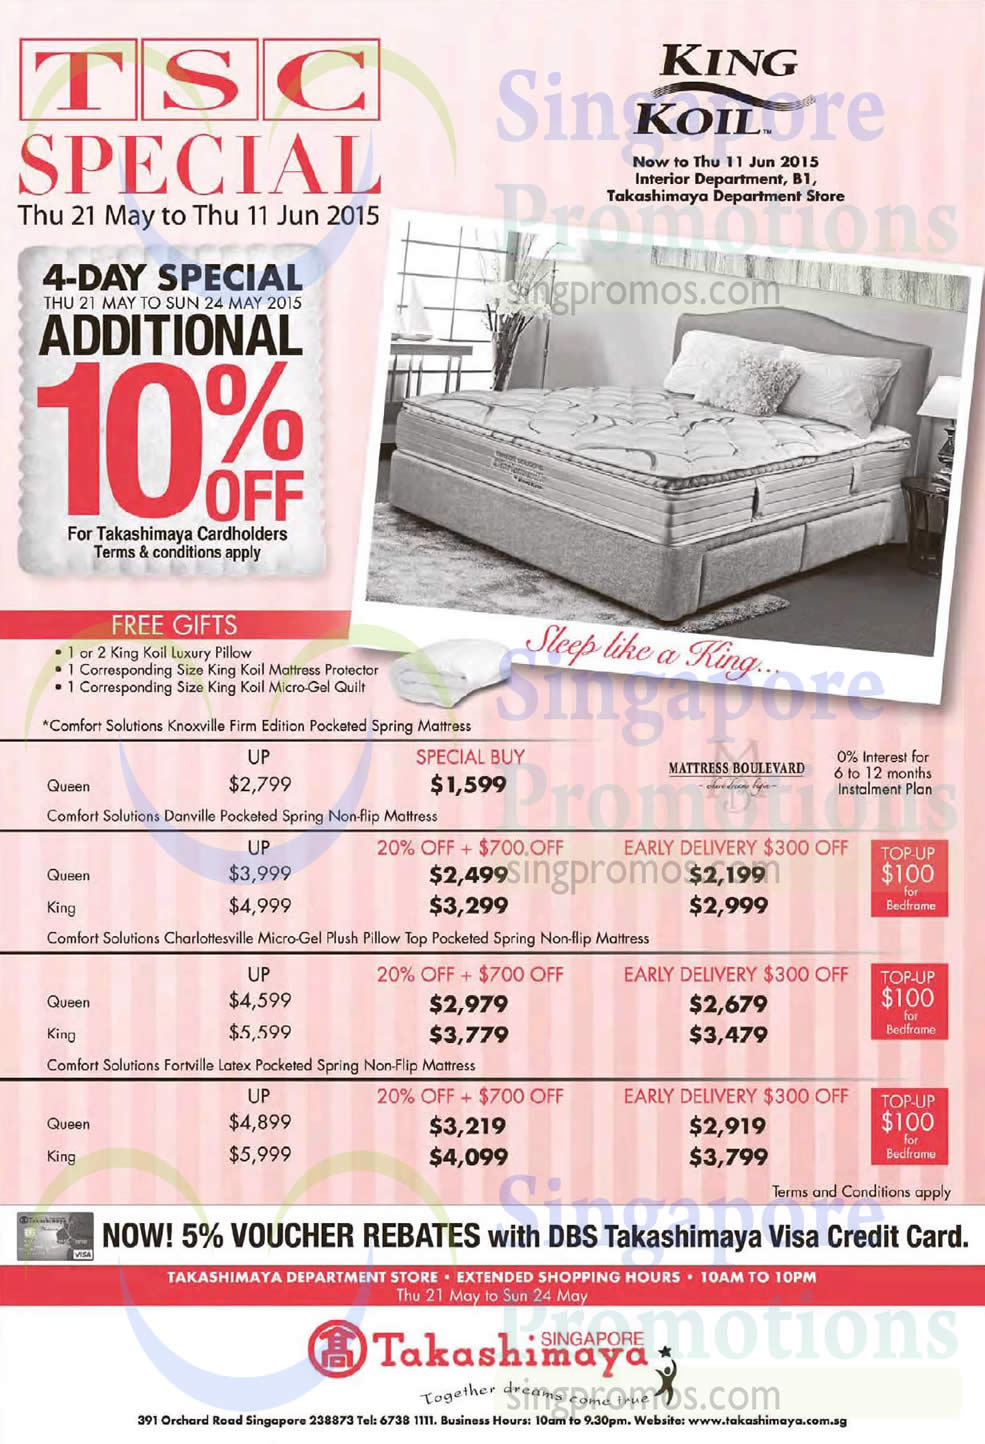 King Koil Comfort Solutions Mattresses Knoxville Firm Edition Danville Charlottesville Micro Gel Fortville